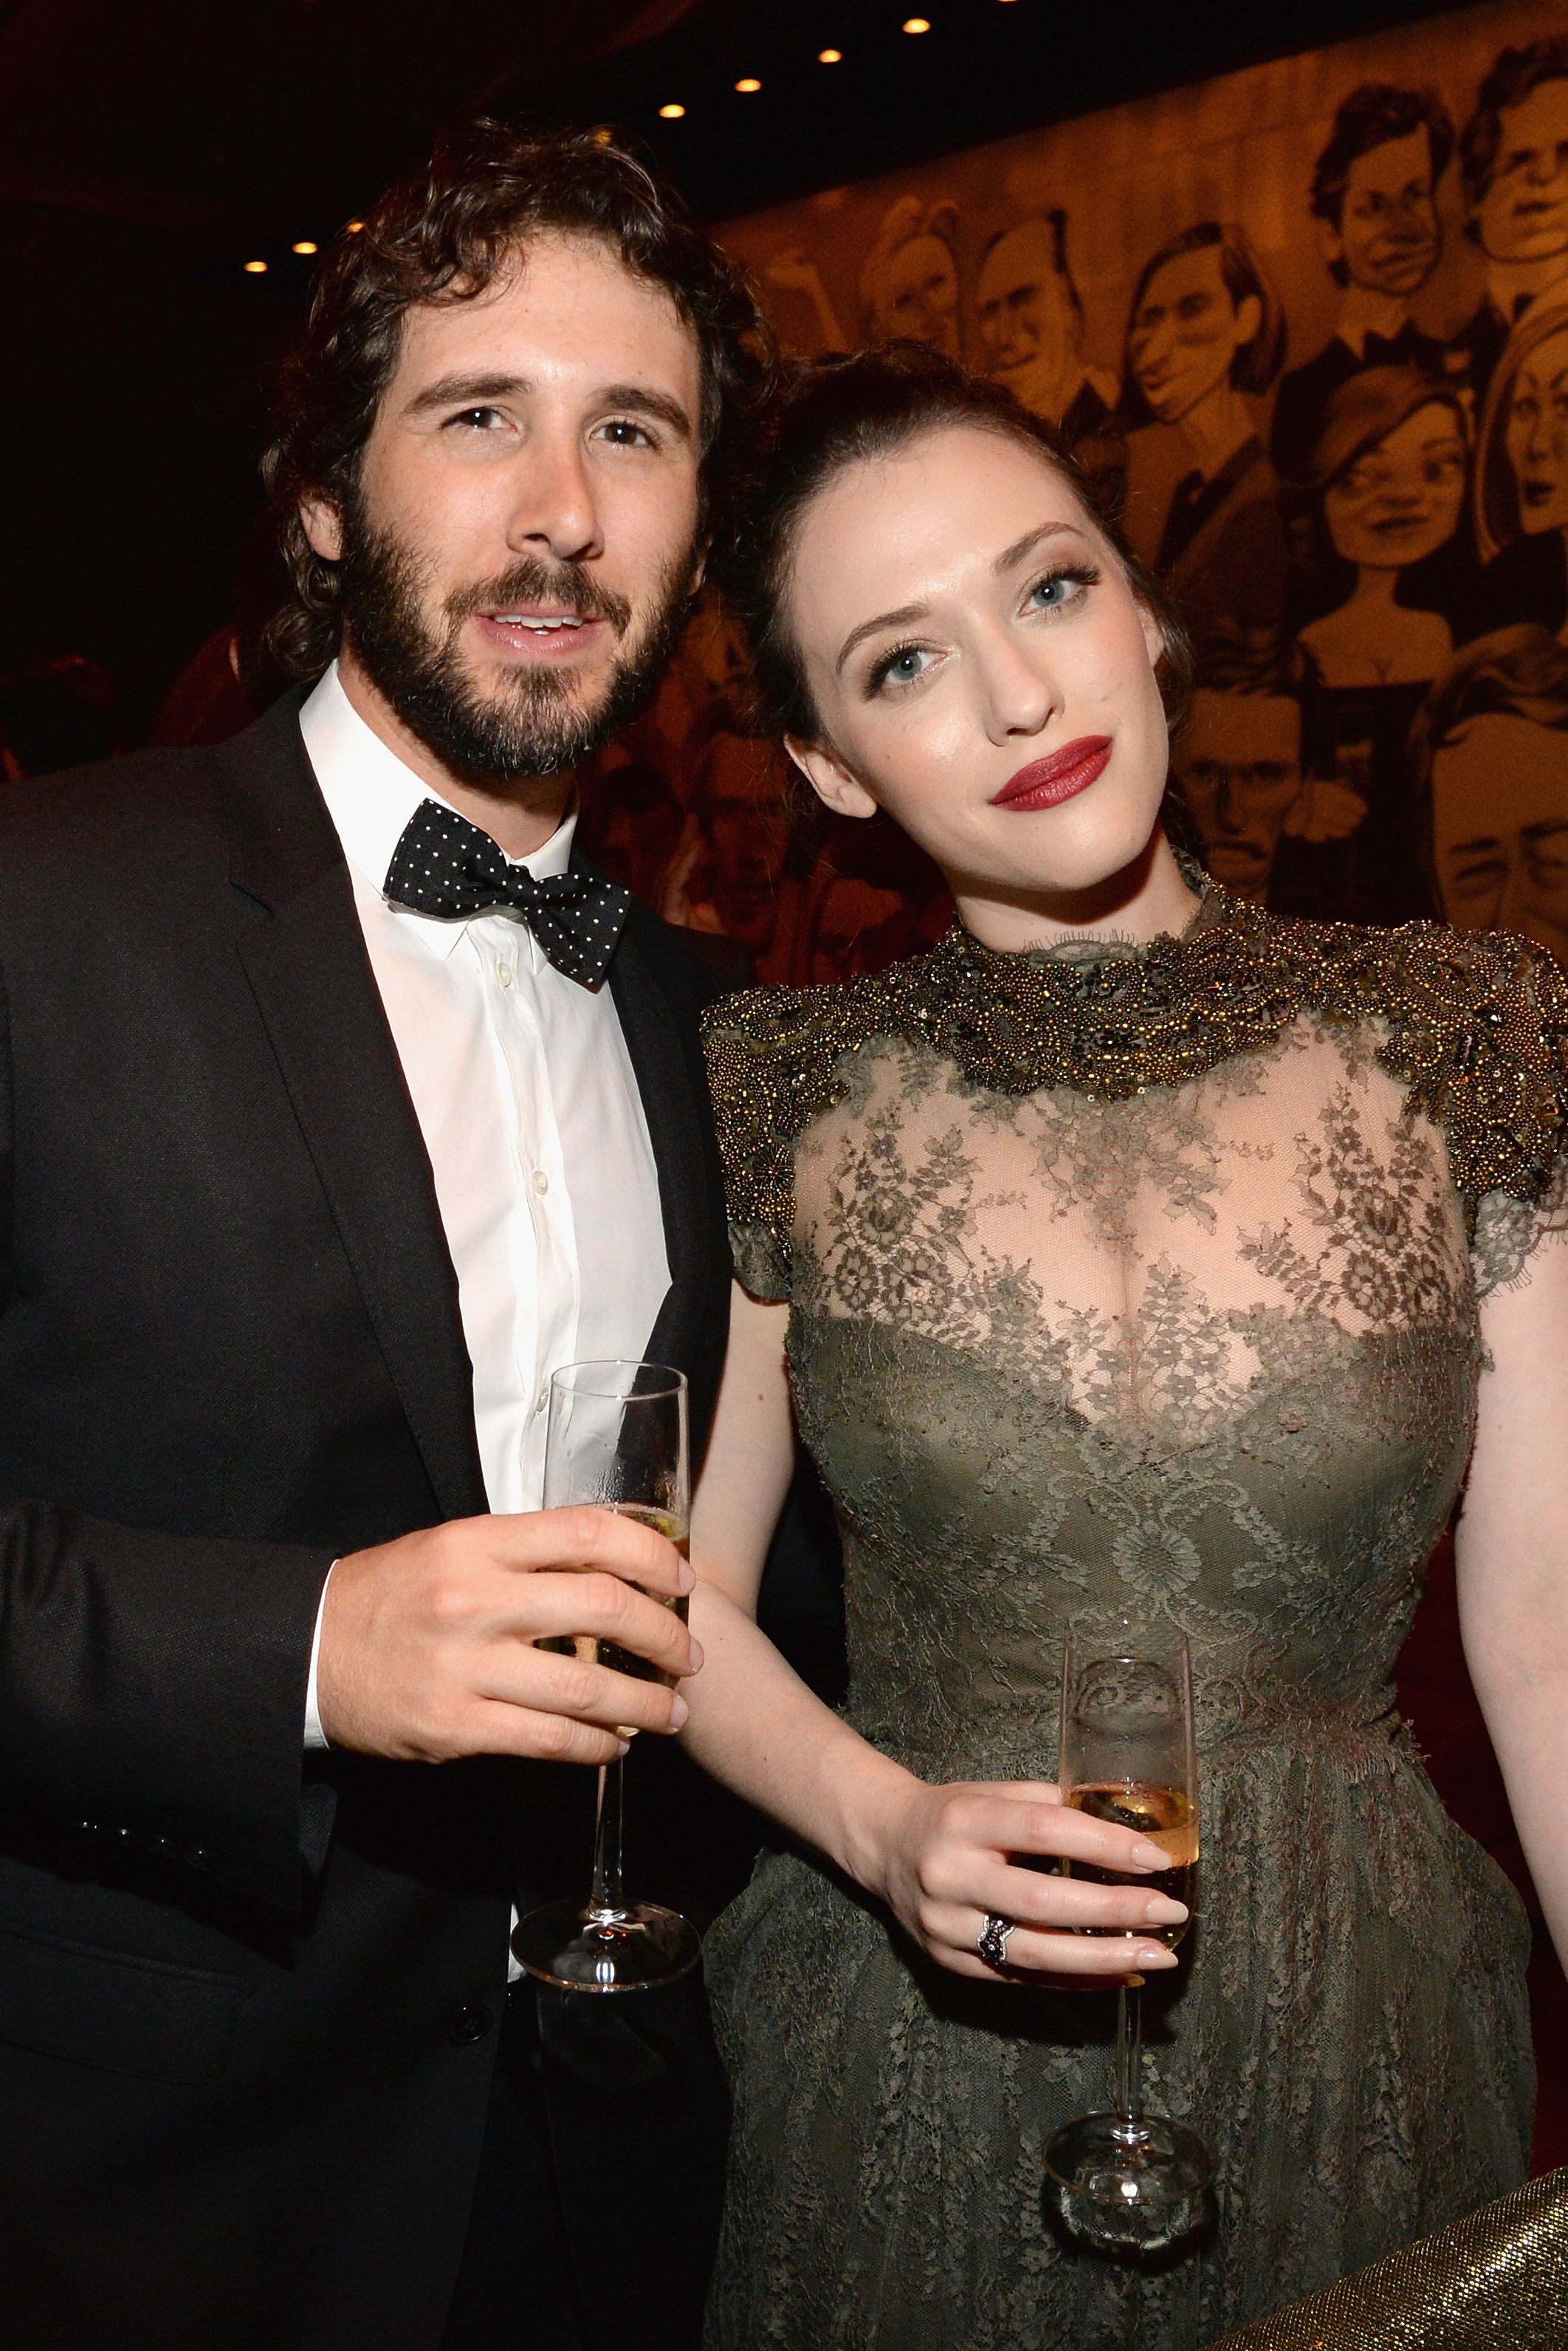 "Josh Groban and Kat Dennings The couple were set up by Dennings' Two Broke Girls costar Beth Behrs, who had been friends with Groban for years. ""I always wanted to find him the right girl. At the time, Kat was in a relationship, so I couldn't. Then they happened to both be single for once at the same time,"" Behrs told People ."